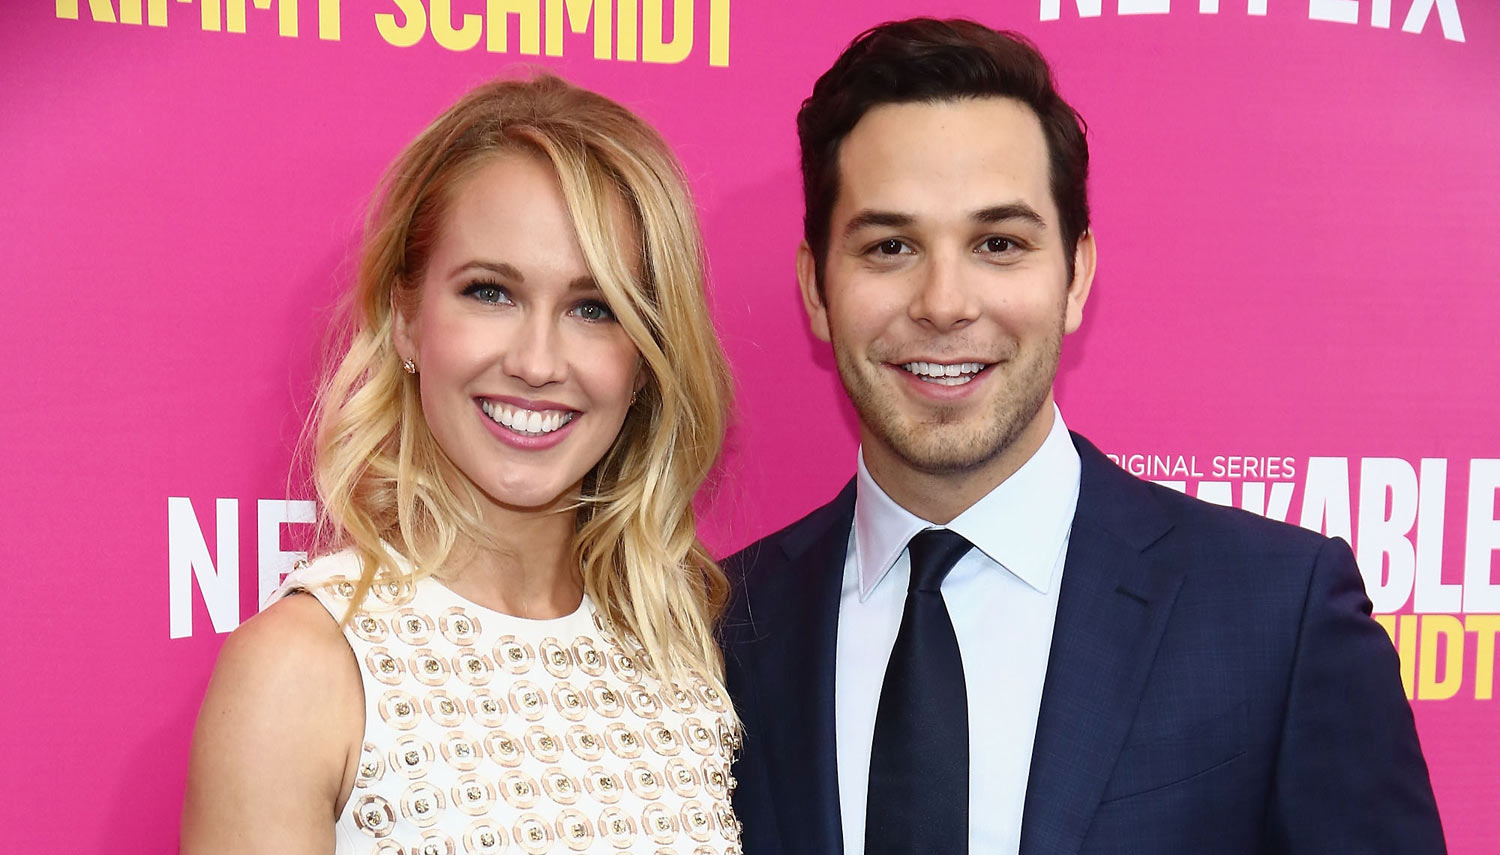 Pitch Perfect's Skylar Astin & Anna Camp Are Married